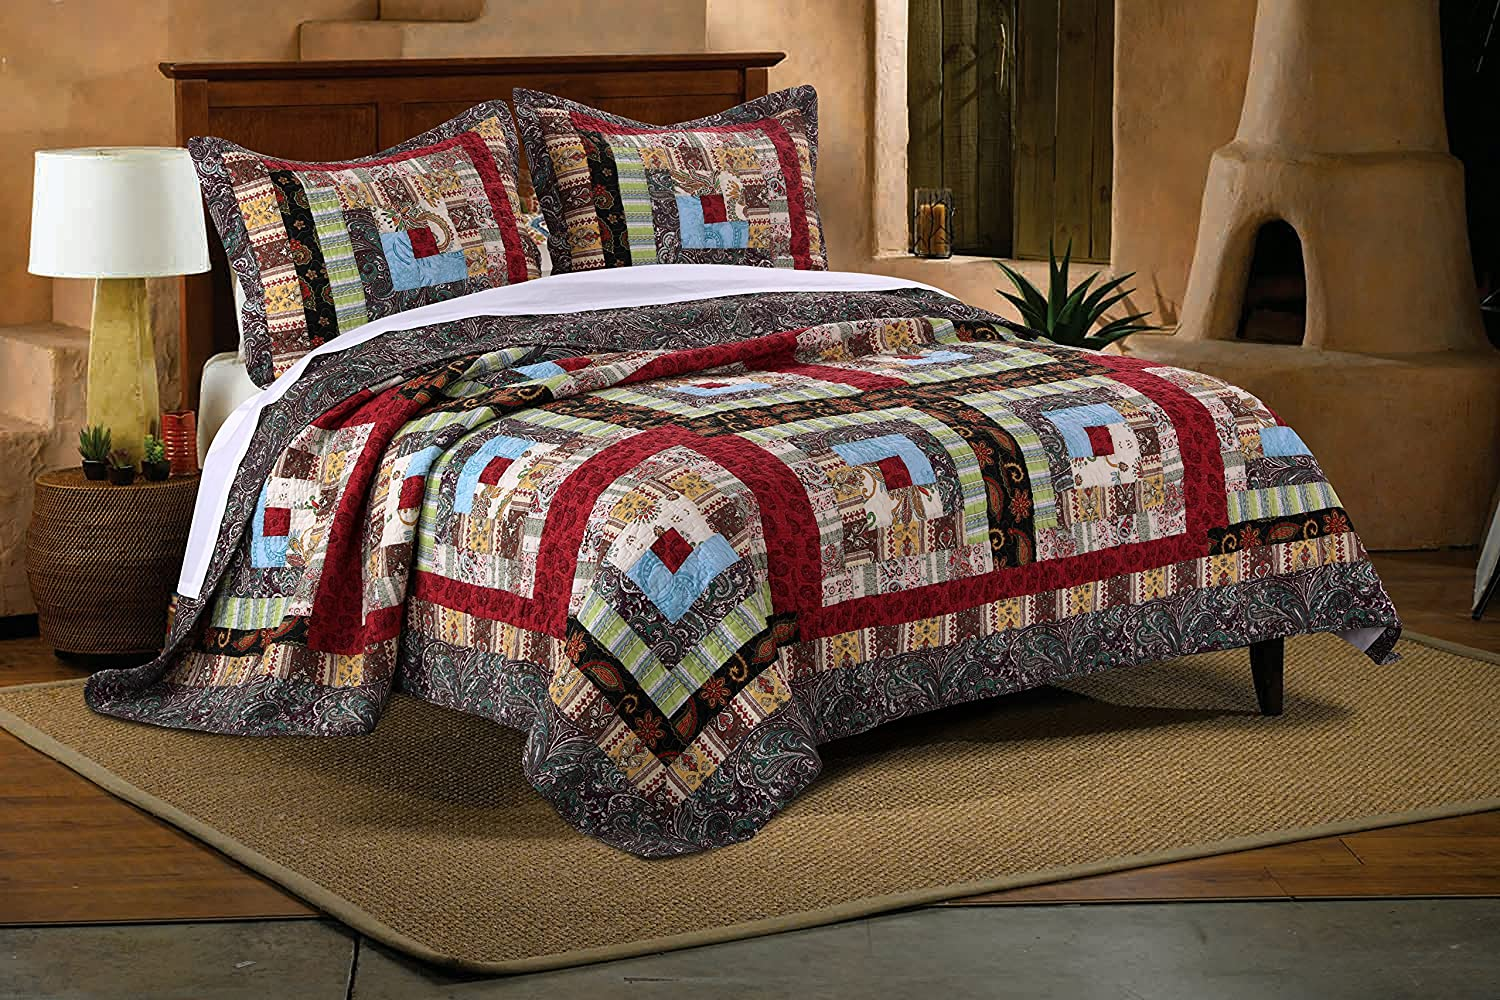 Greenland Home Colorado Lodge Quilt Set, 2-Piece Twin/Twin XL